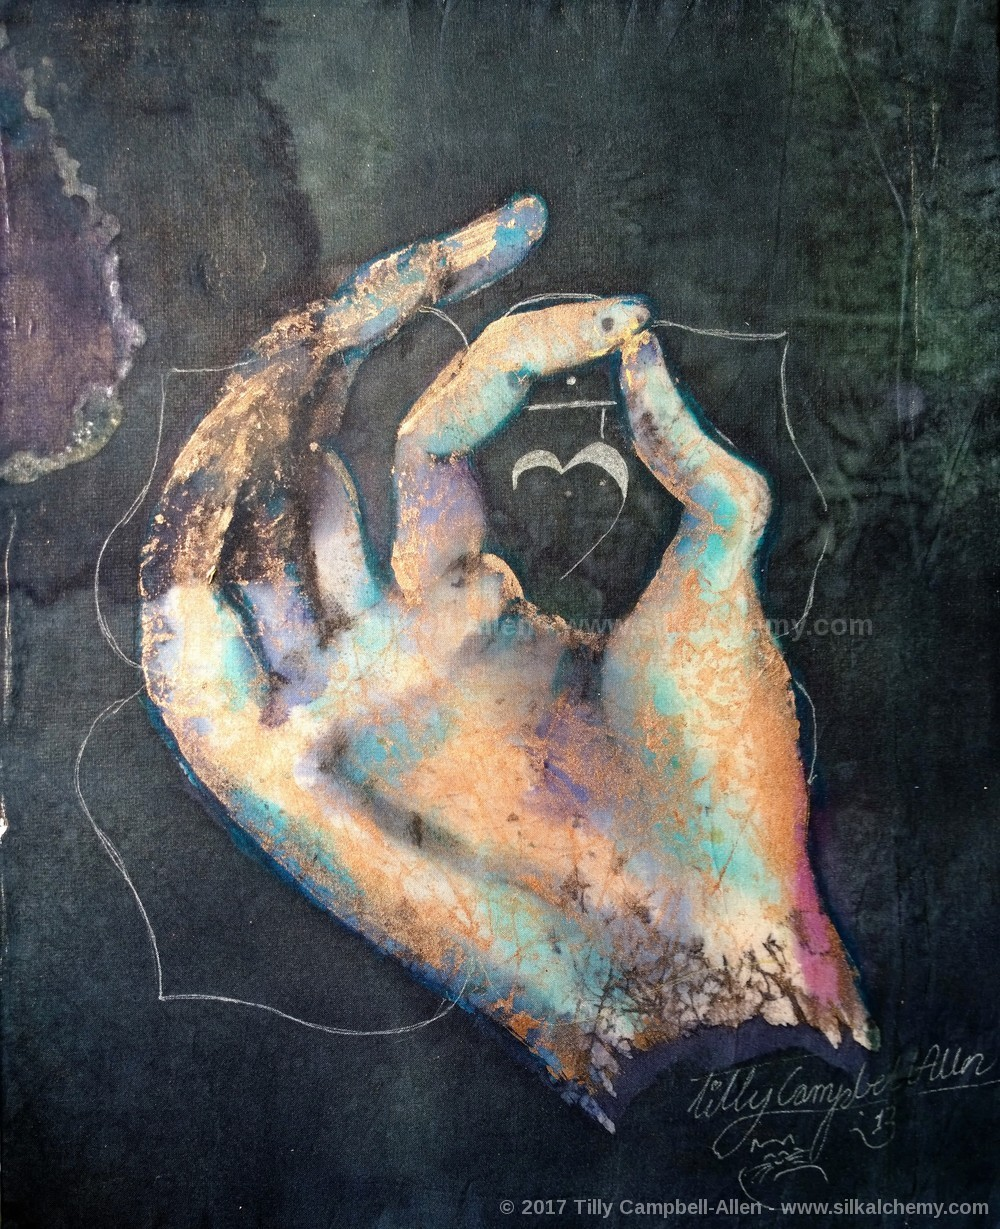 Muladhara Root mudra by Tilly Campbell